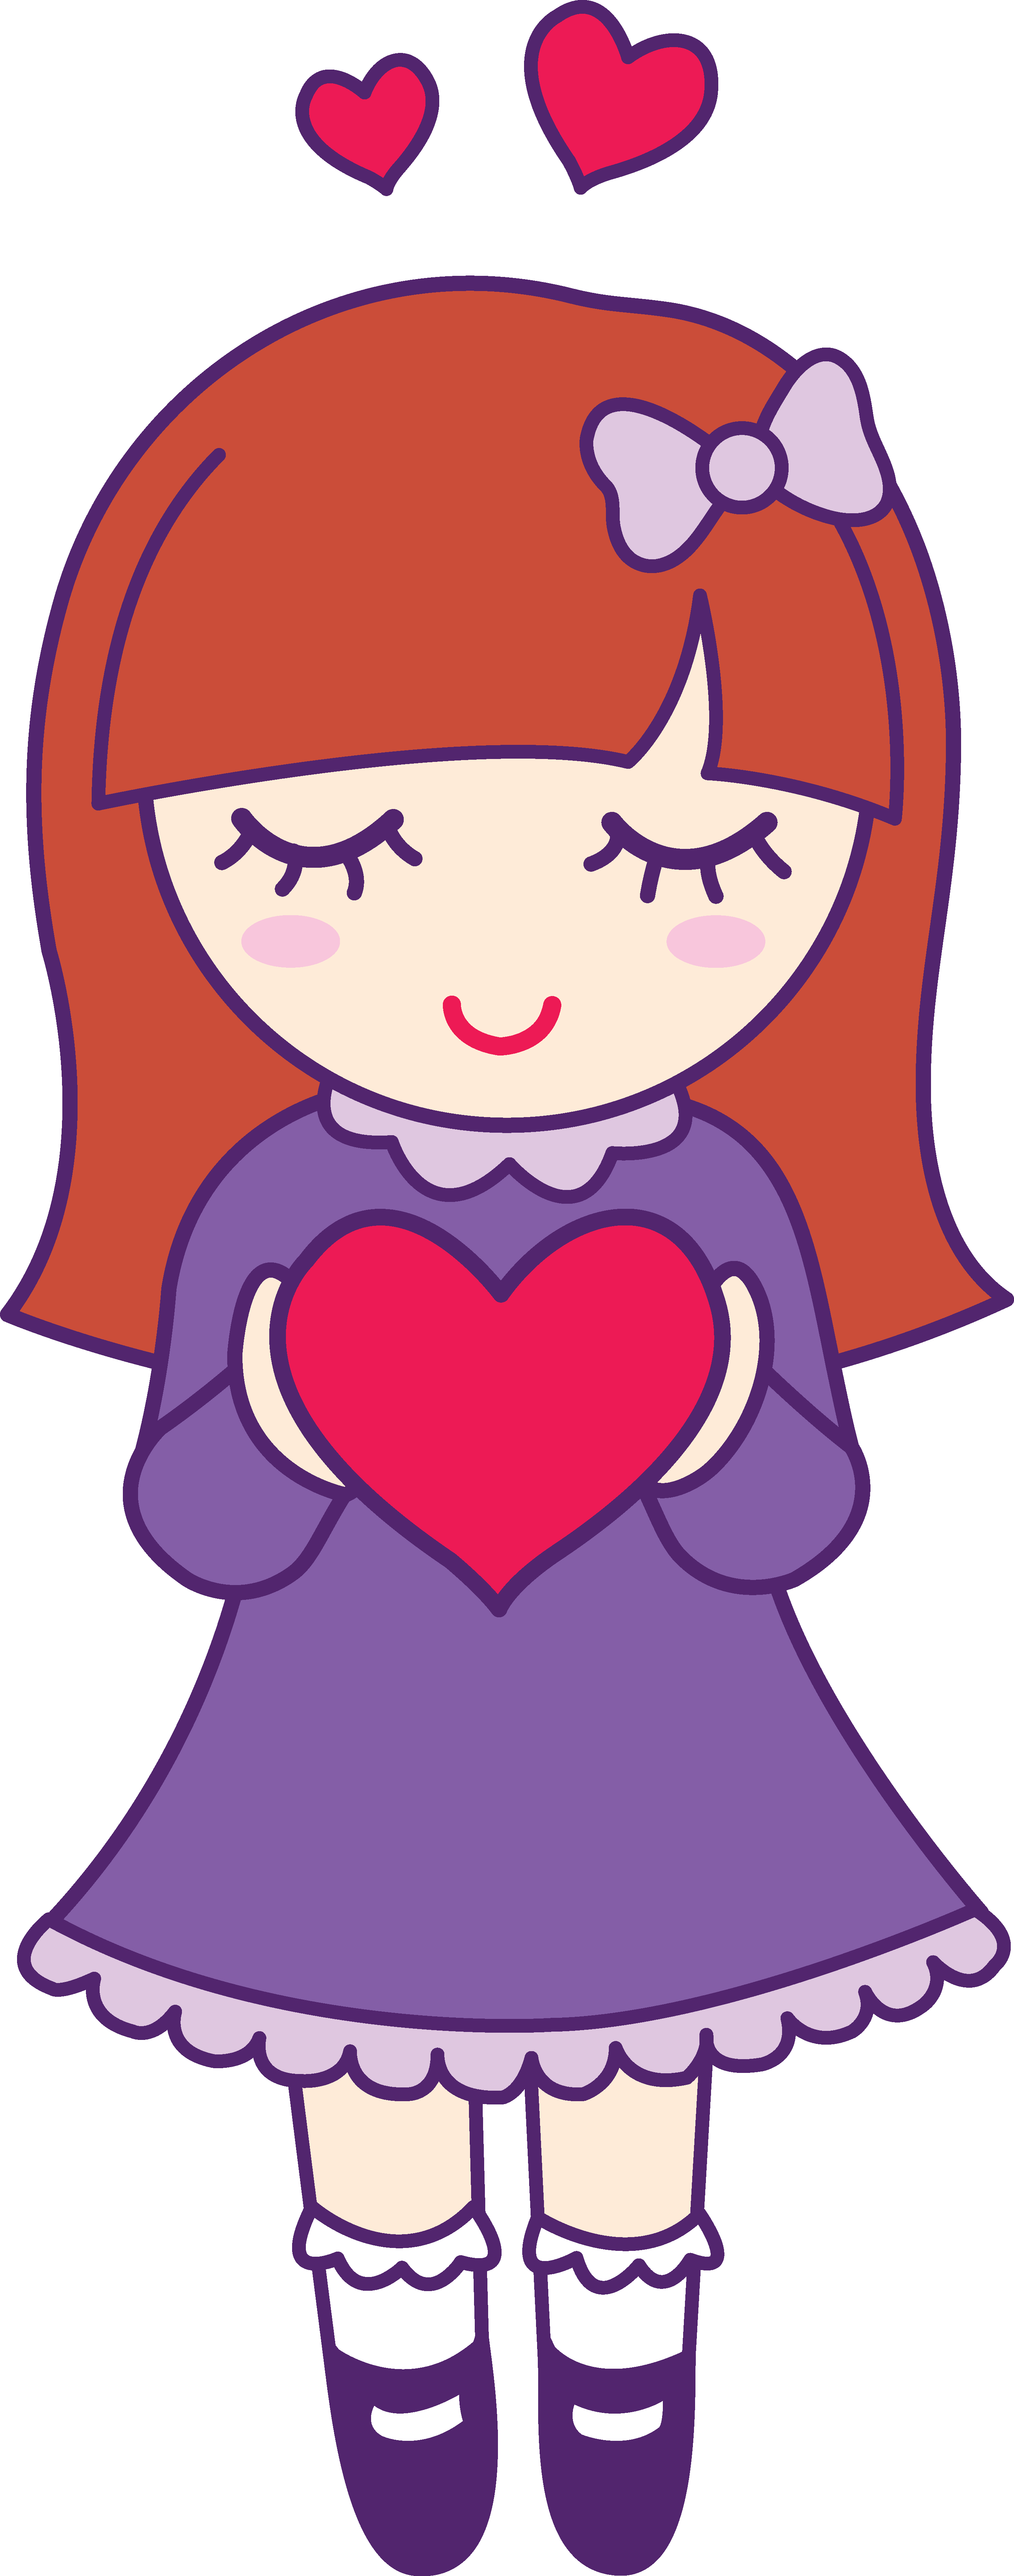 Pretty girl clip art clipart images gallery for free.